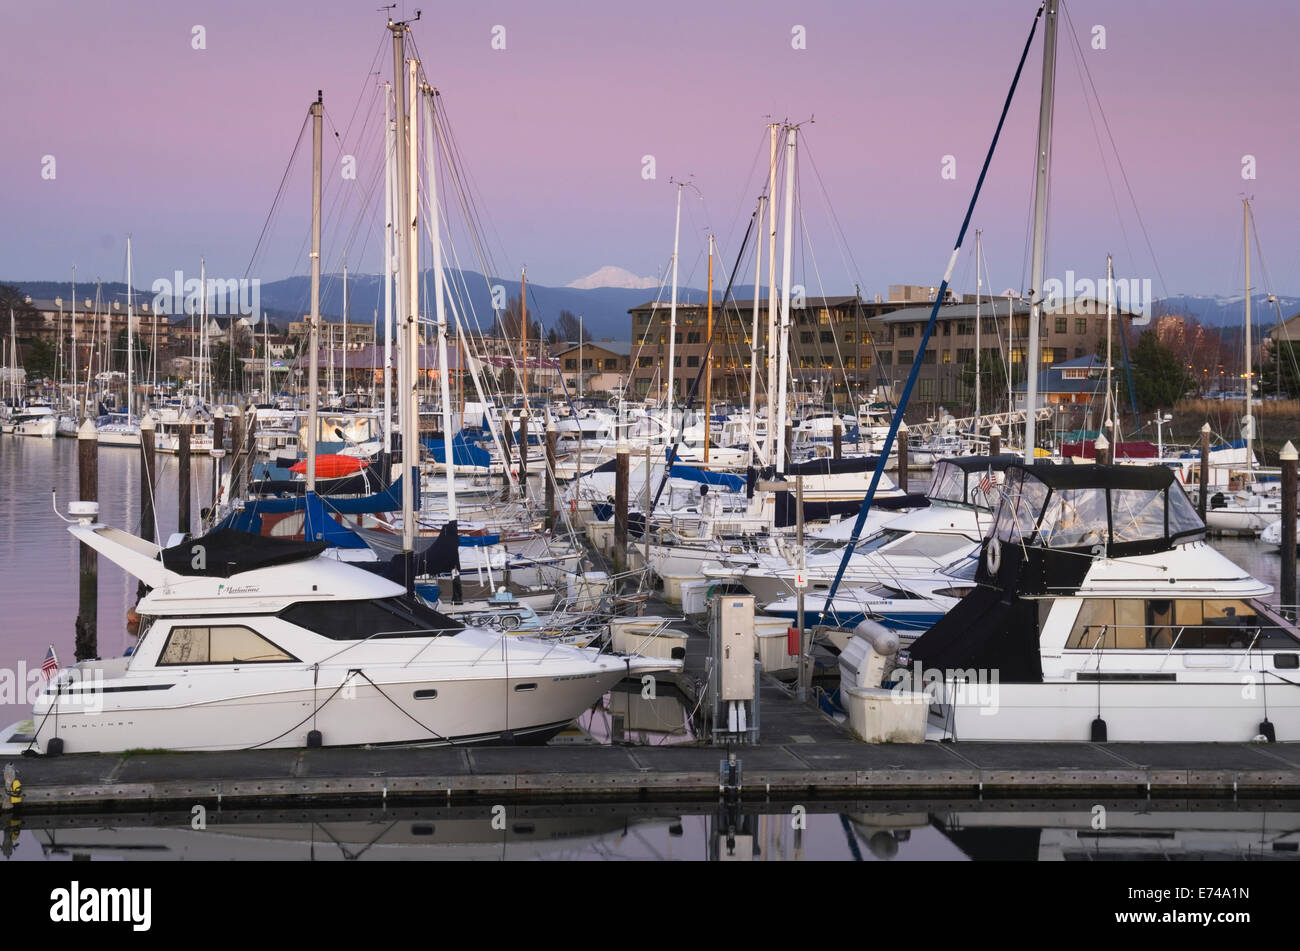 Yachts in the Squalicum Marina at dusk with Mount Baker looming in the background, Bellingham Bay Washington - Stock Image